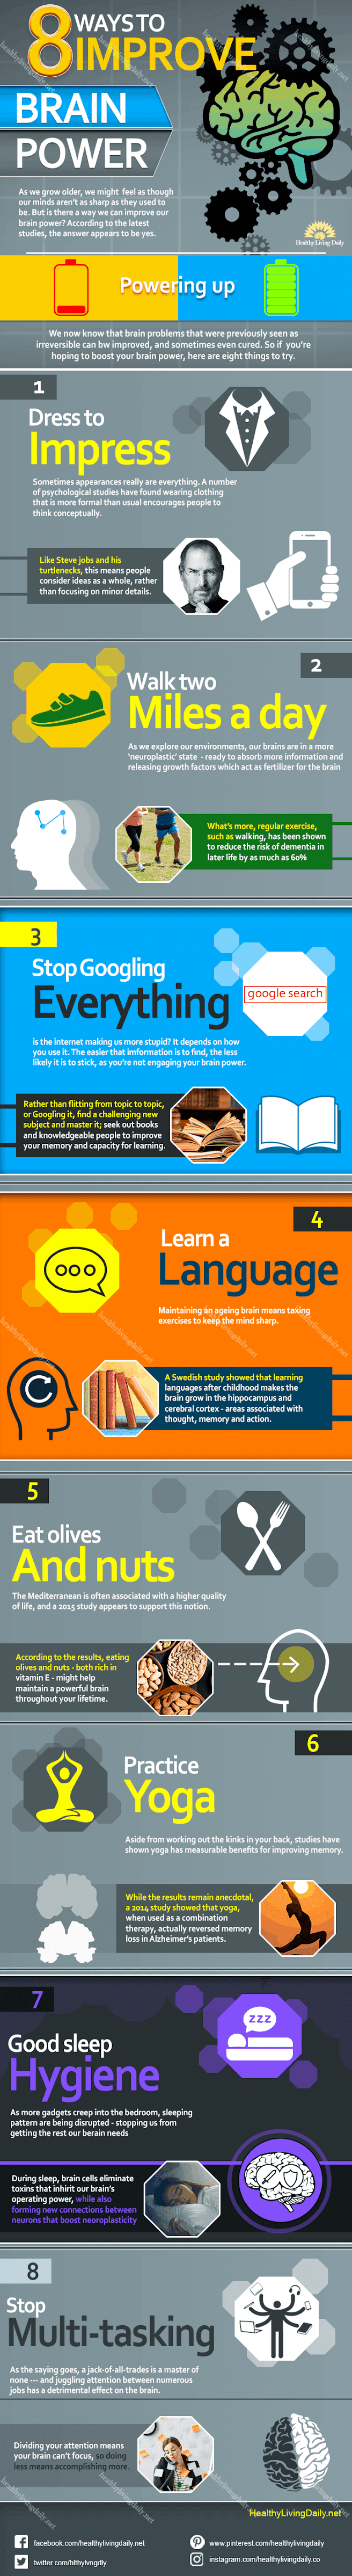 8 Ways To Improve Your Brain Power #infographic #Health #Brain Power #infographics #Health & Wellness #Infographic